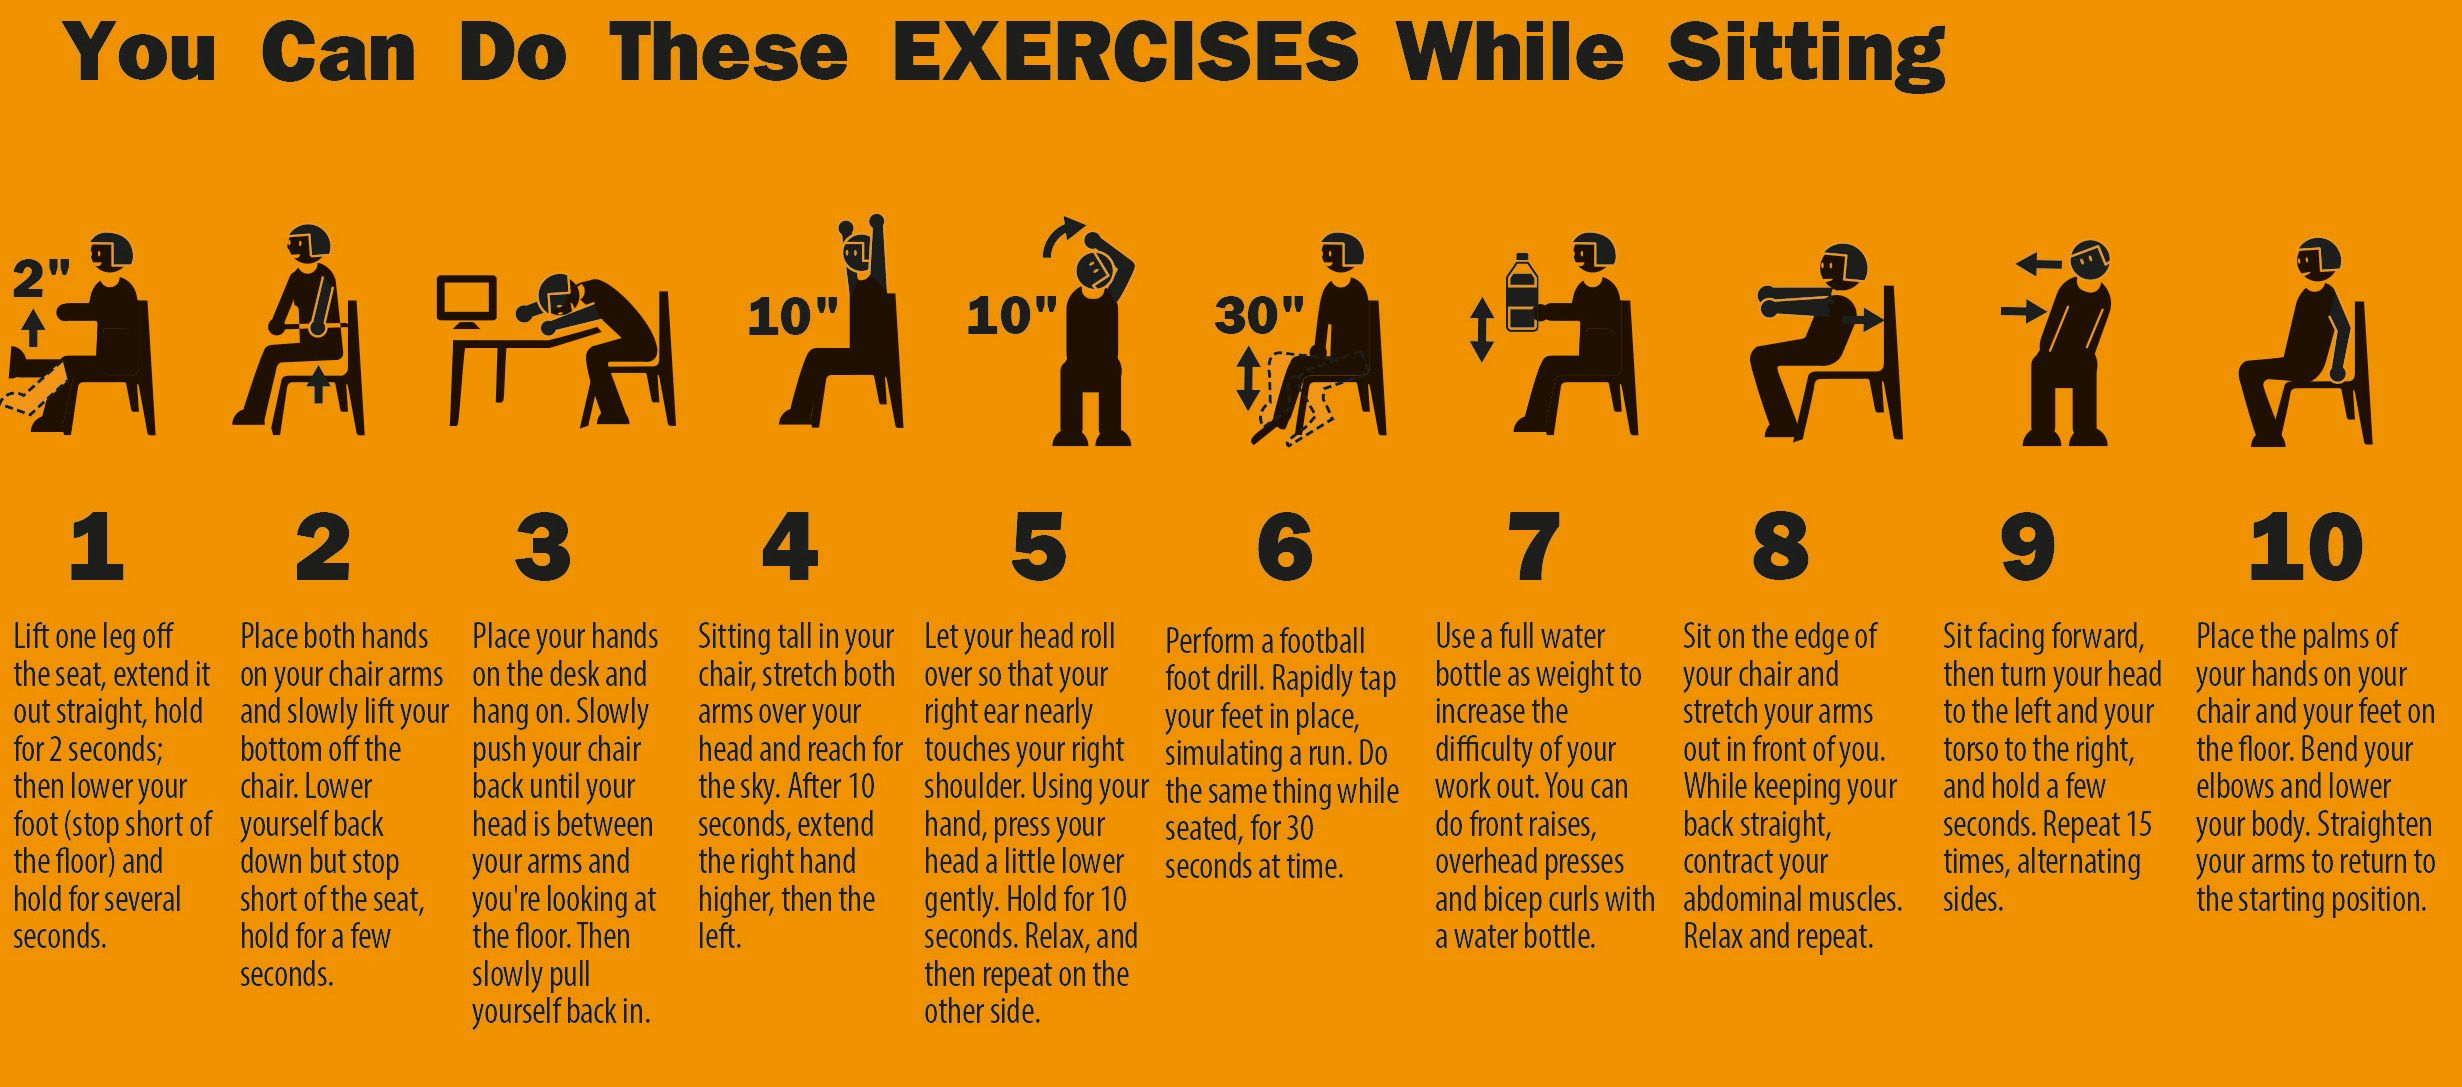 10 Easy Exercises You Can Do At Your Office Cubicle. www.rosiinc.com